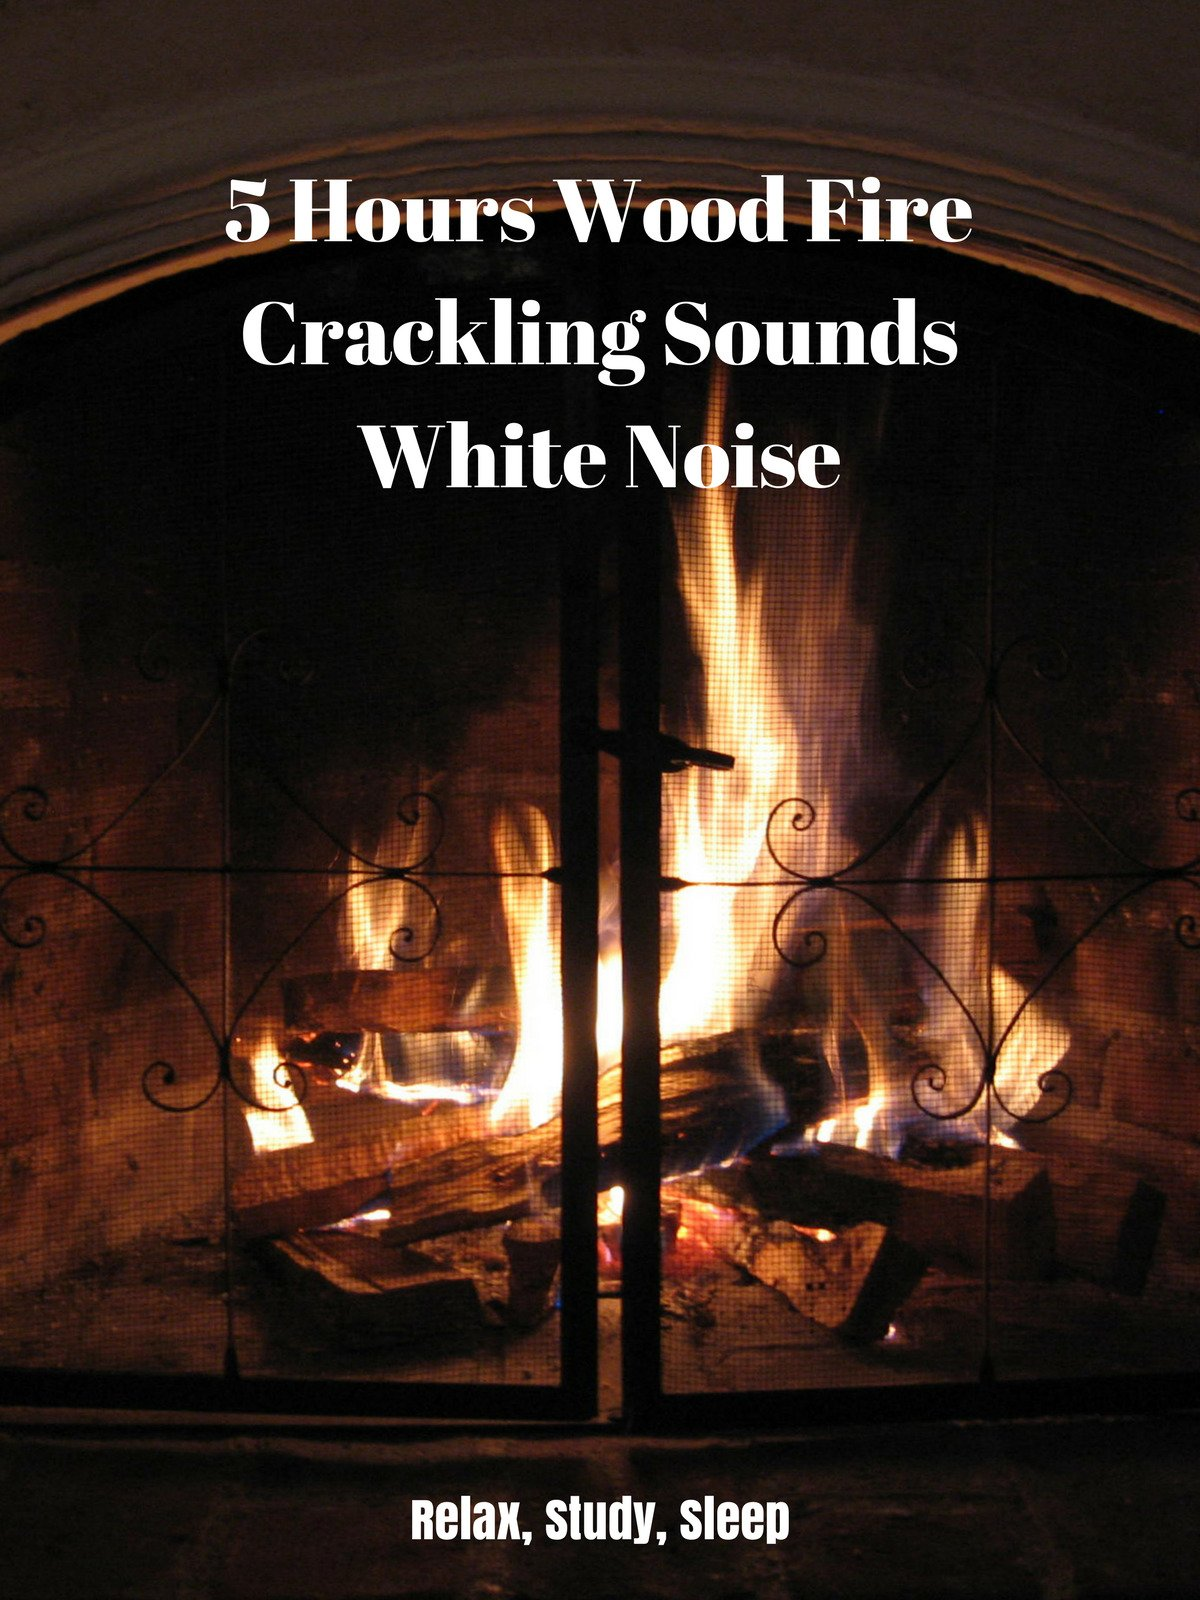 5 Hours Wood Fire Crackling Sounds White Noise